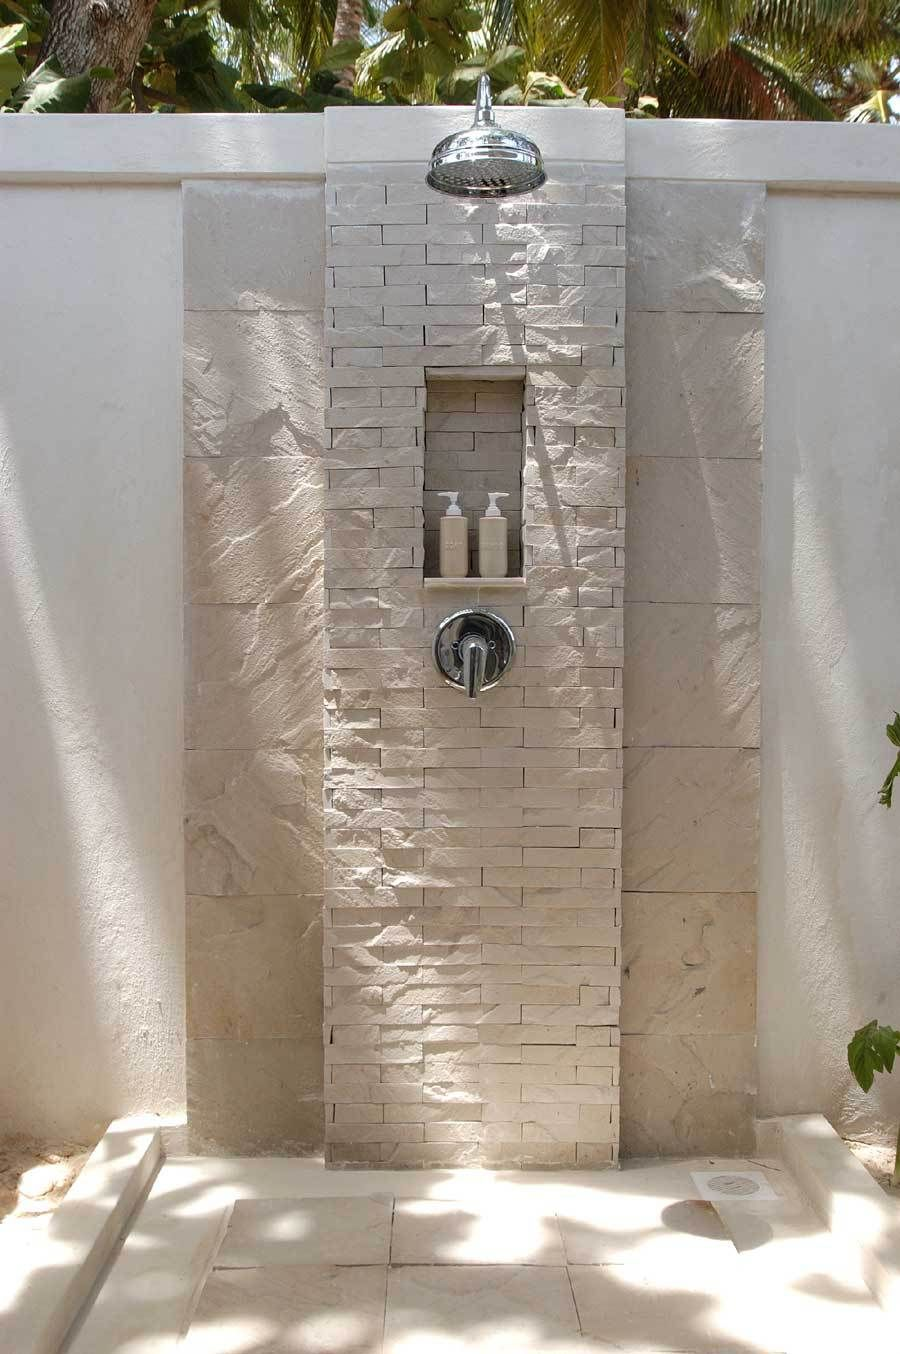 Outdoor Showers Can Make You Feel Cool In The Hot